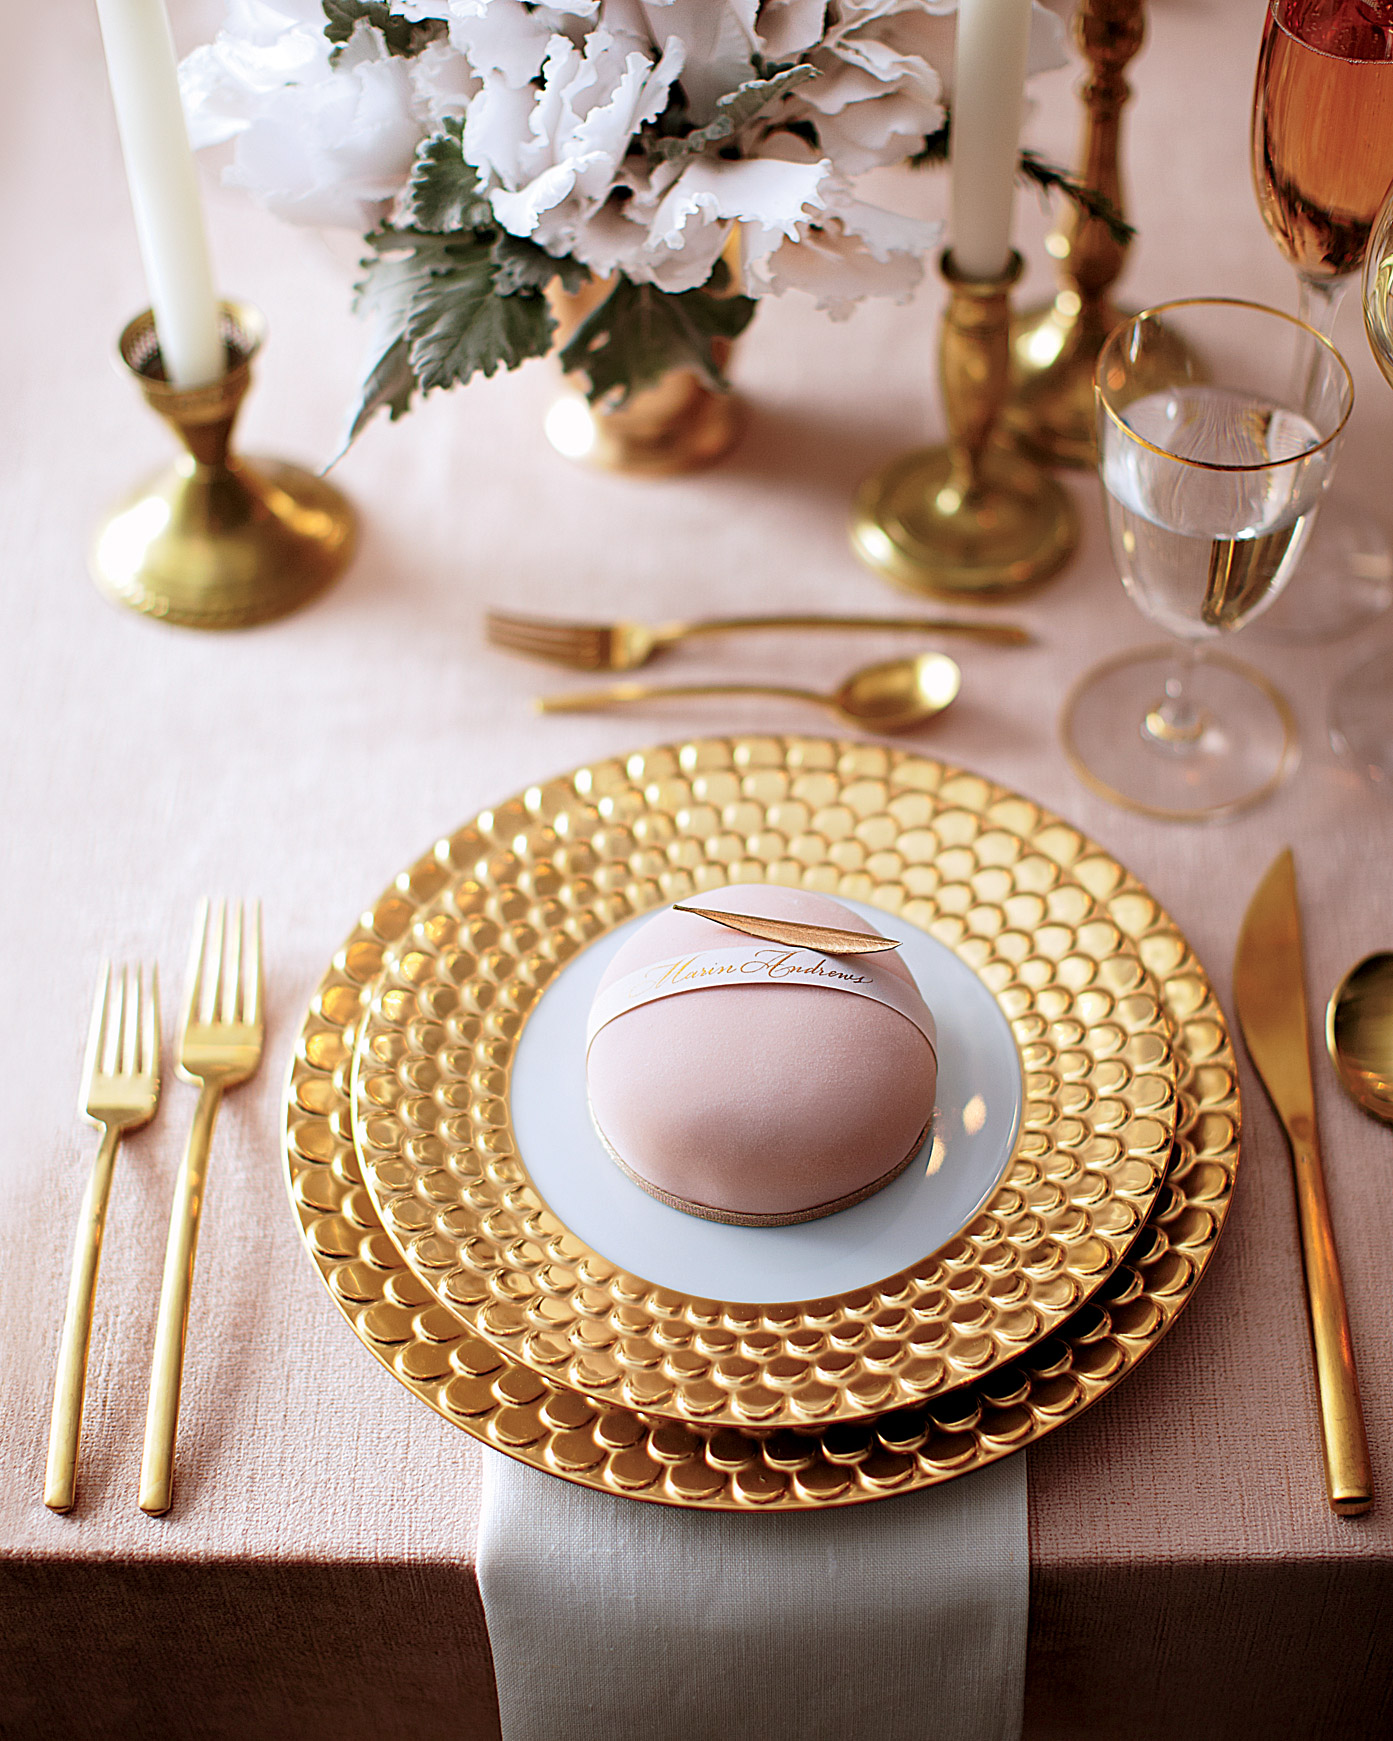 table-setting-mwd107369.jpg